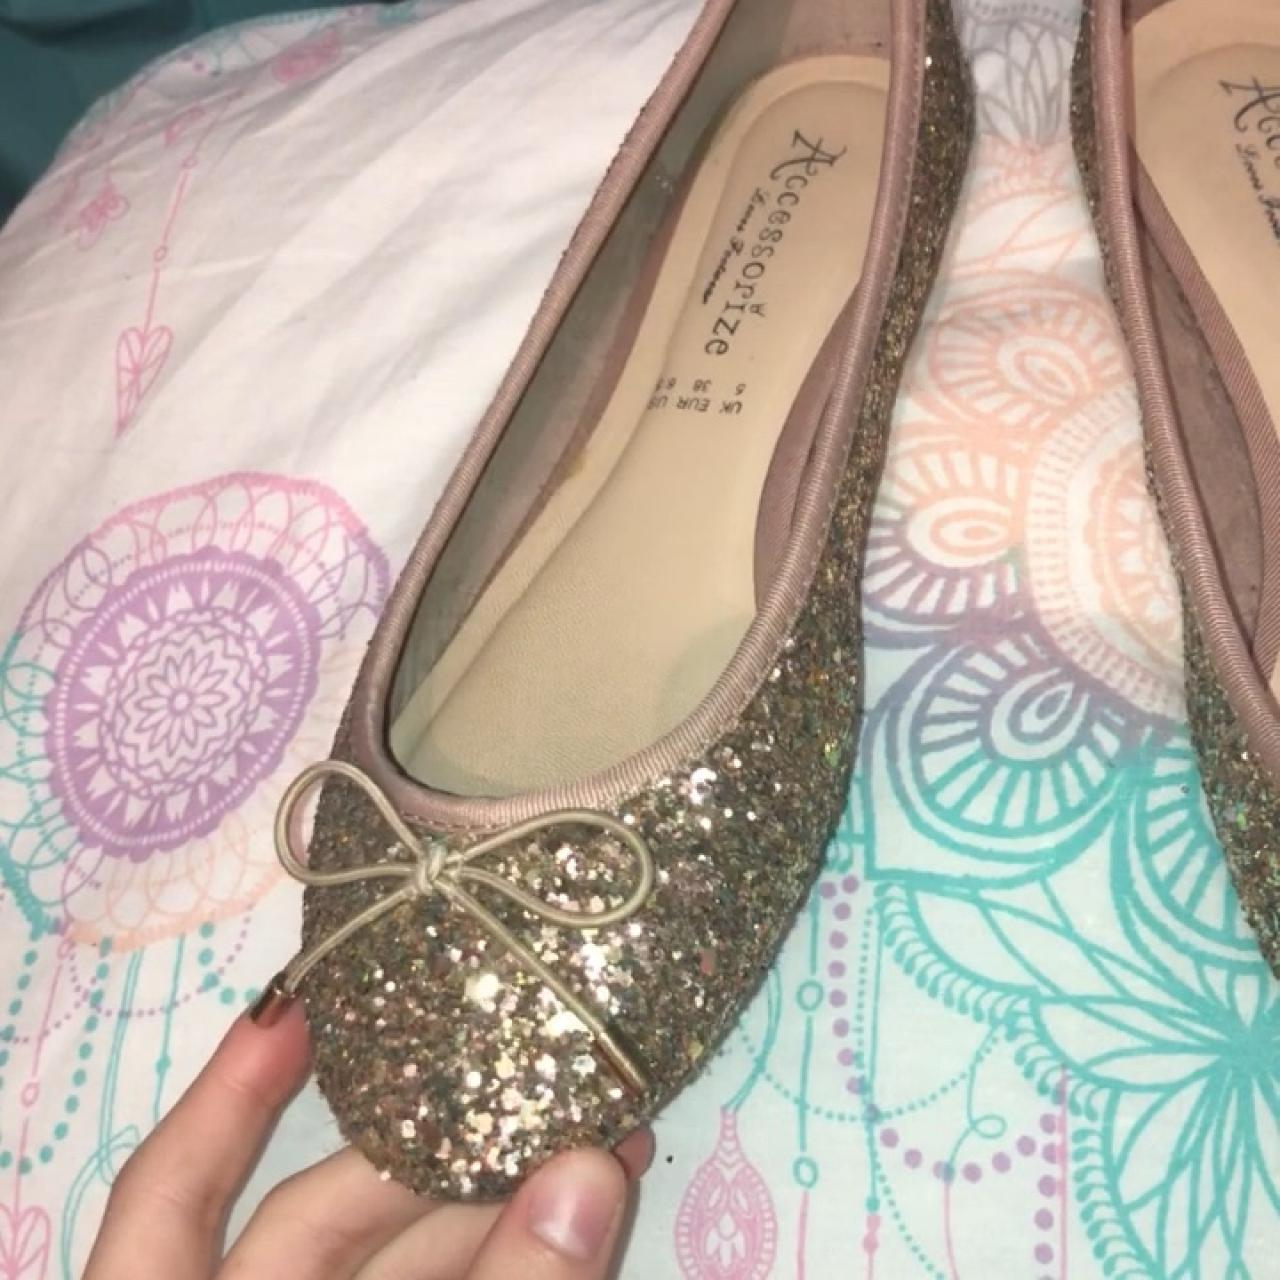 68f202c3a949 Stunning Sparkling Golden Flat Shoes from Accessorize🤩 ✨ at - Depop